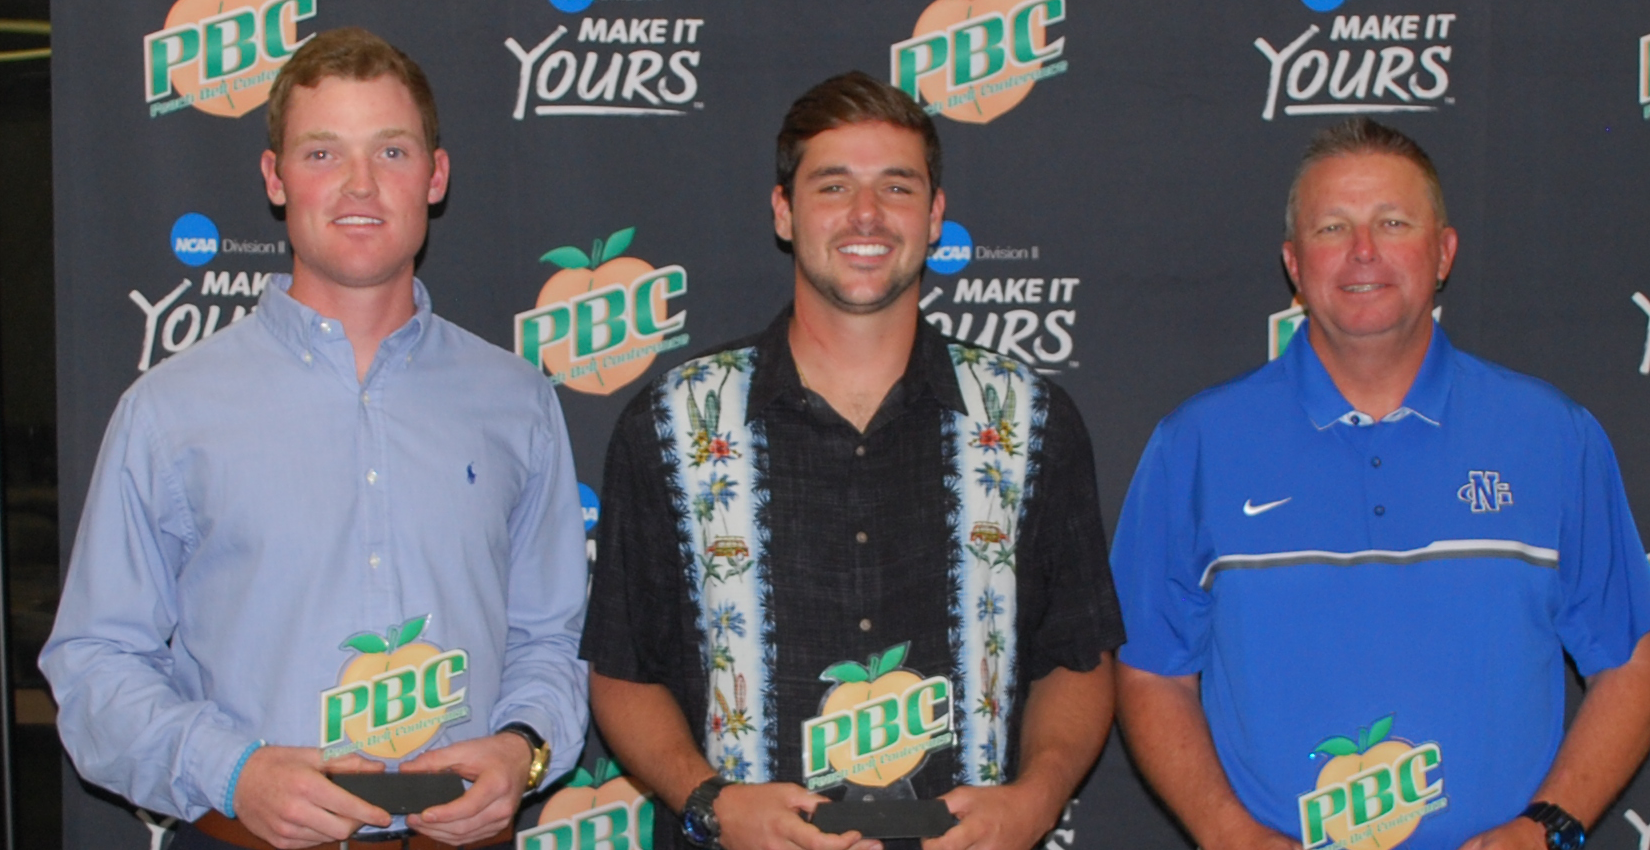 Bobcat shortstop Brandon Benson [left] was named PBC Player of the Year